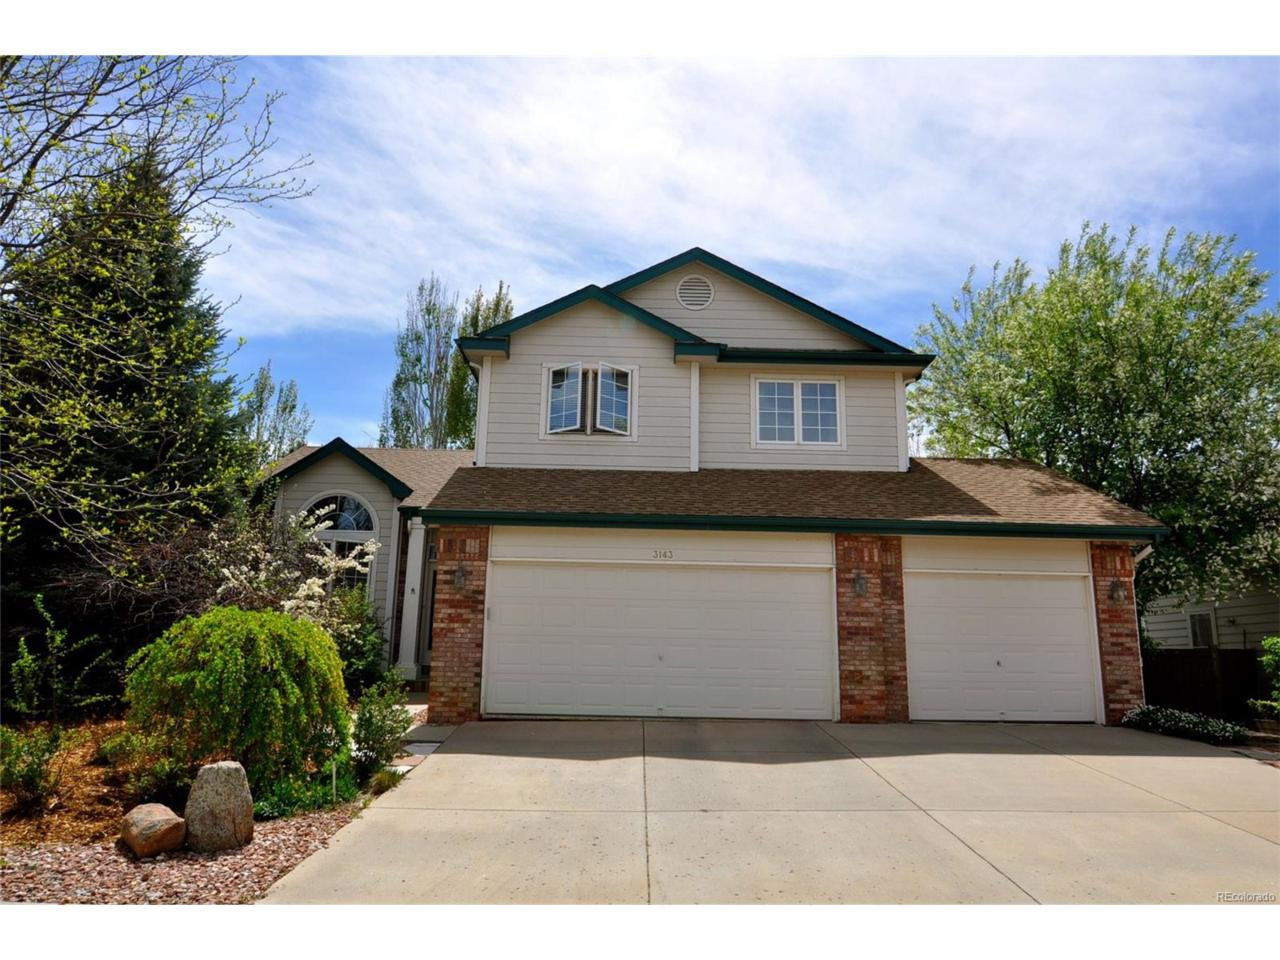 3143 Twin Wash Square, Fort Collins, CO 80528 (MLS #8989924) :: 8z Real Estate